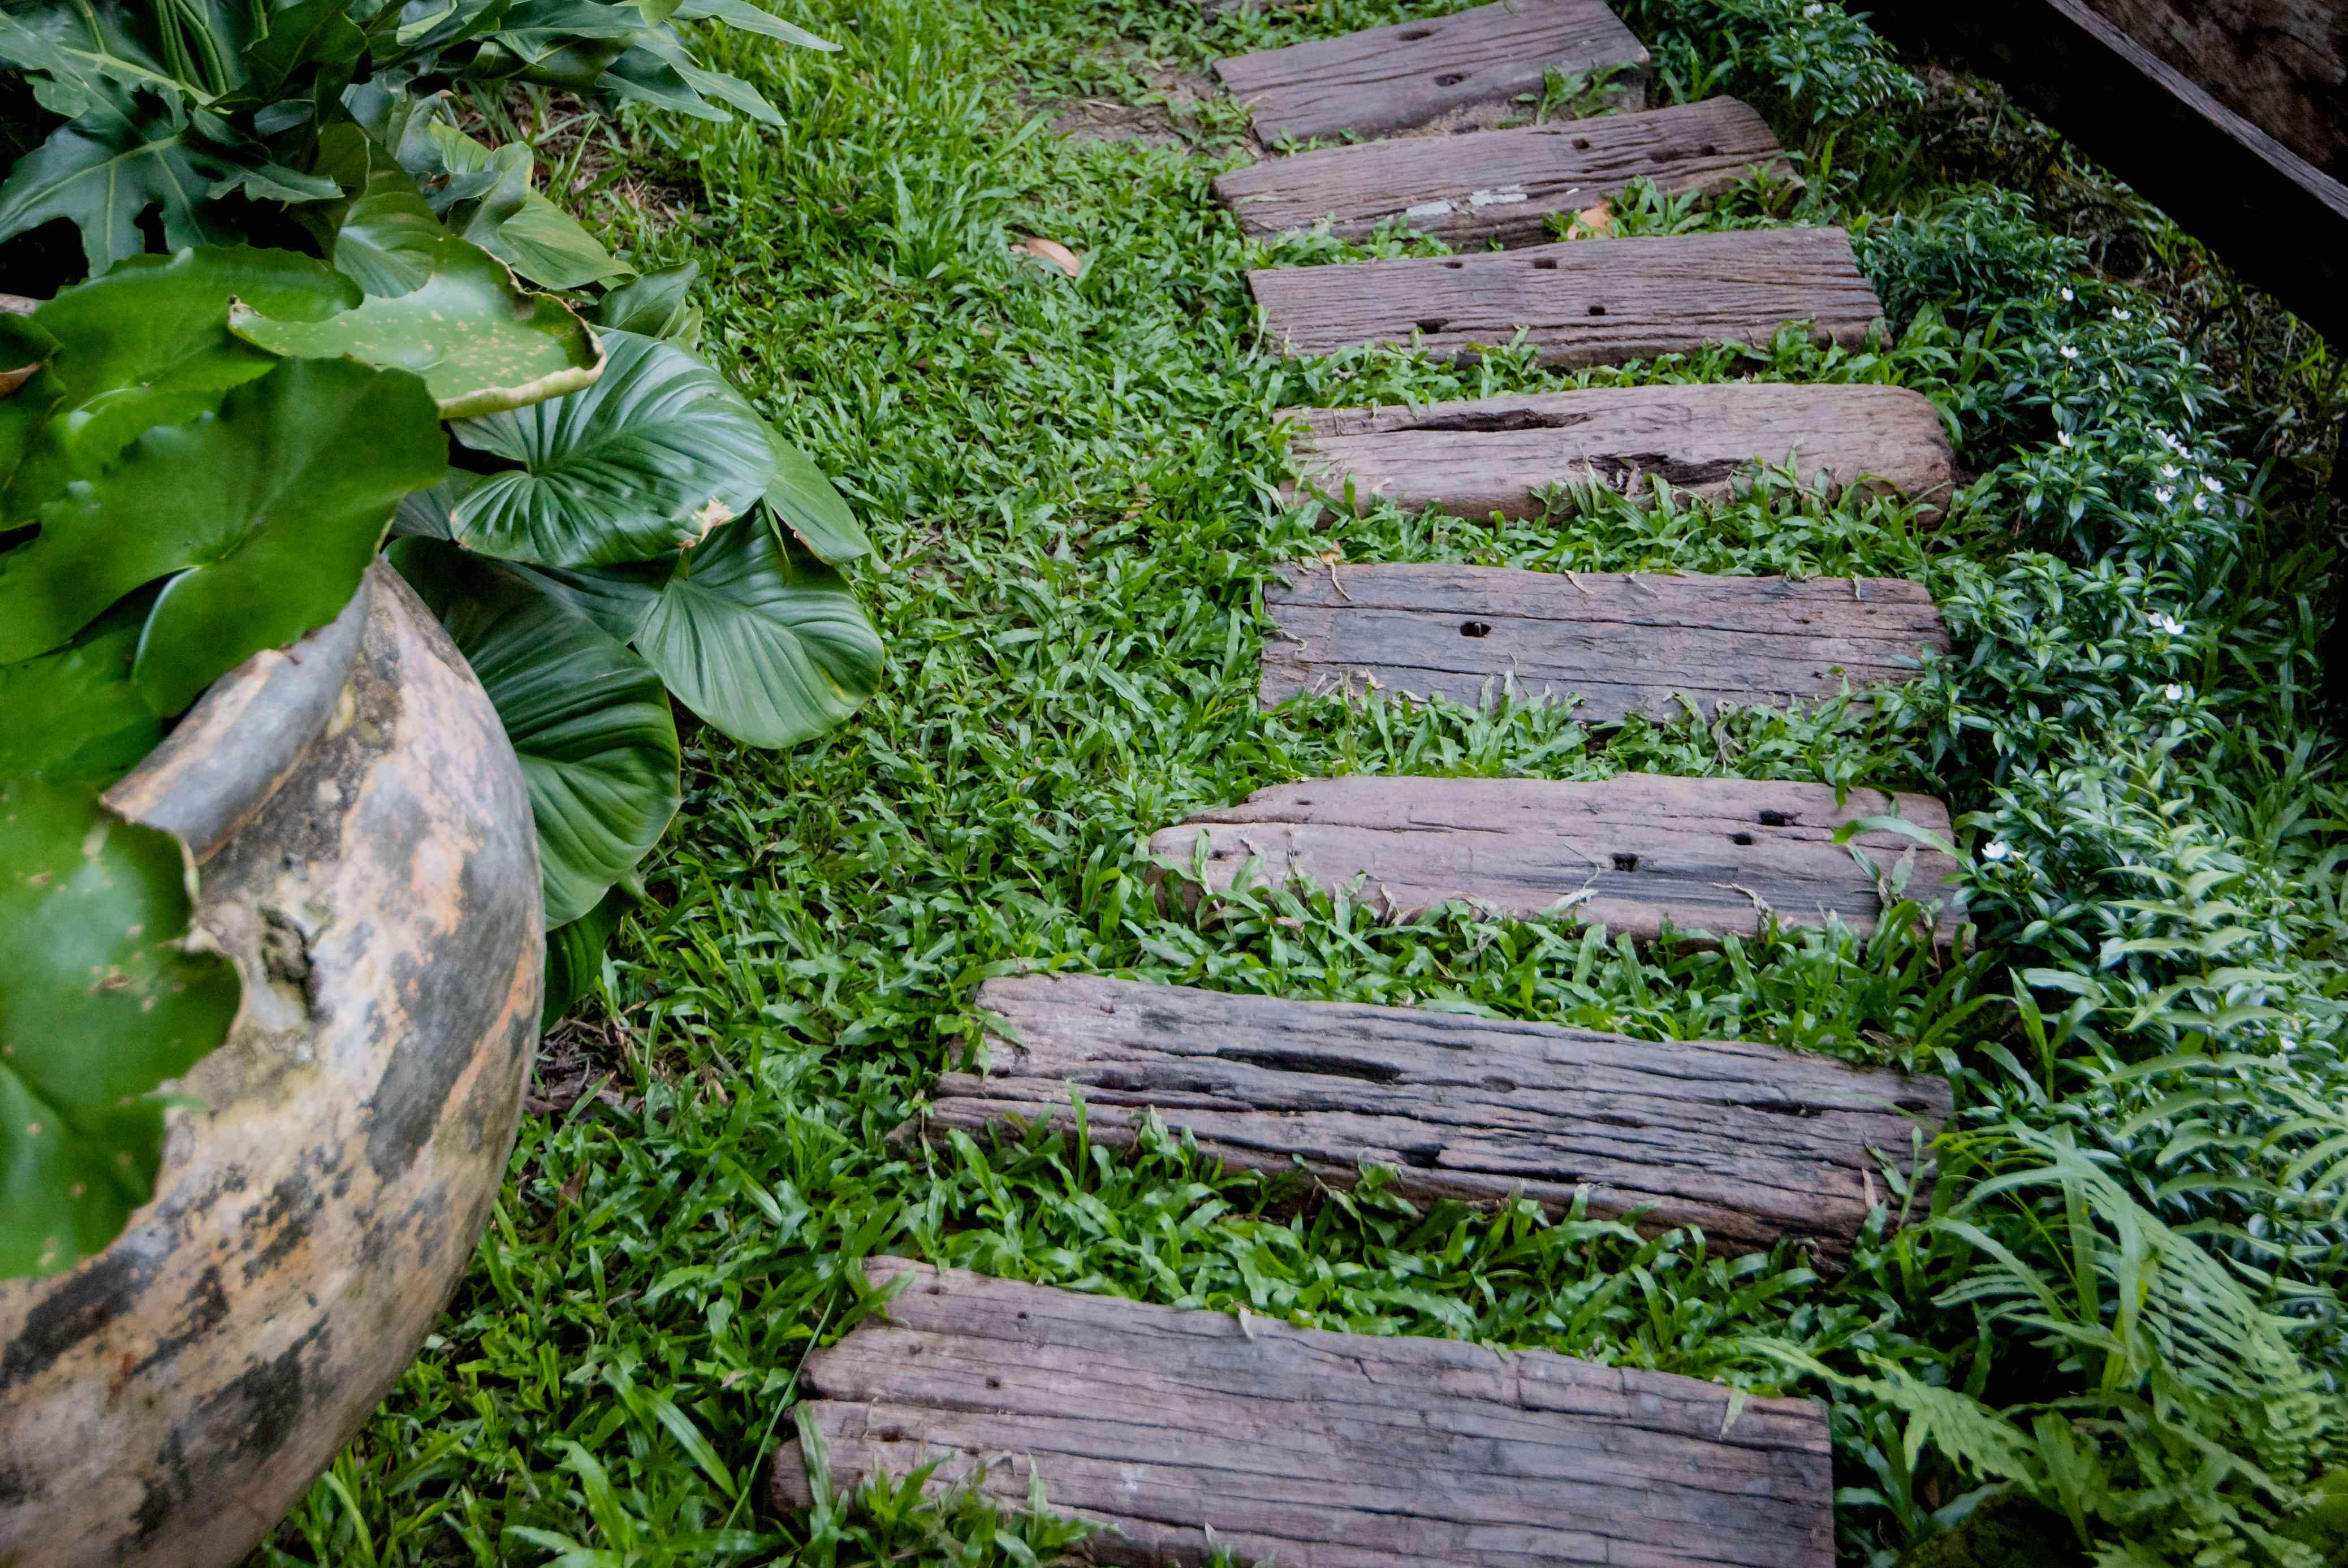 Wooden planks making a path